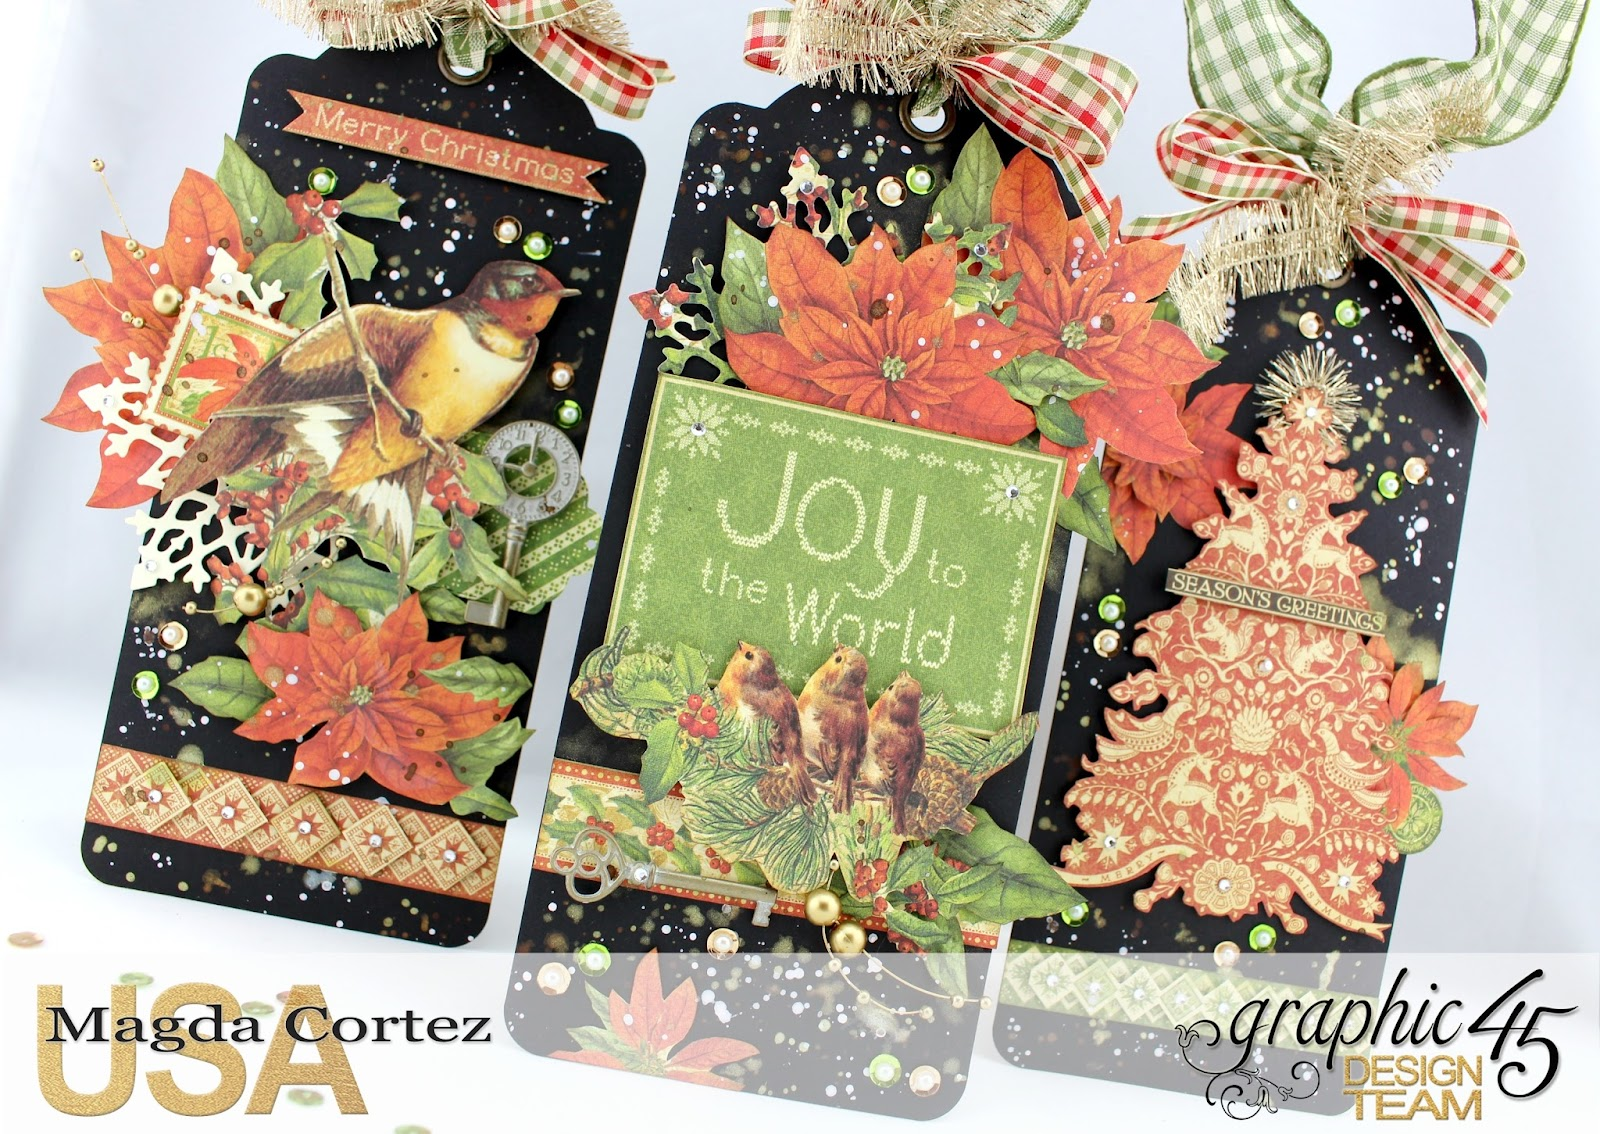 Joy Set of Tags, Winter Wonderland, By Magda Cortez, Product by Graphic 45, Photo 02 of 09.jpg